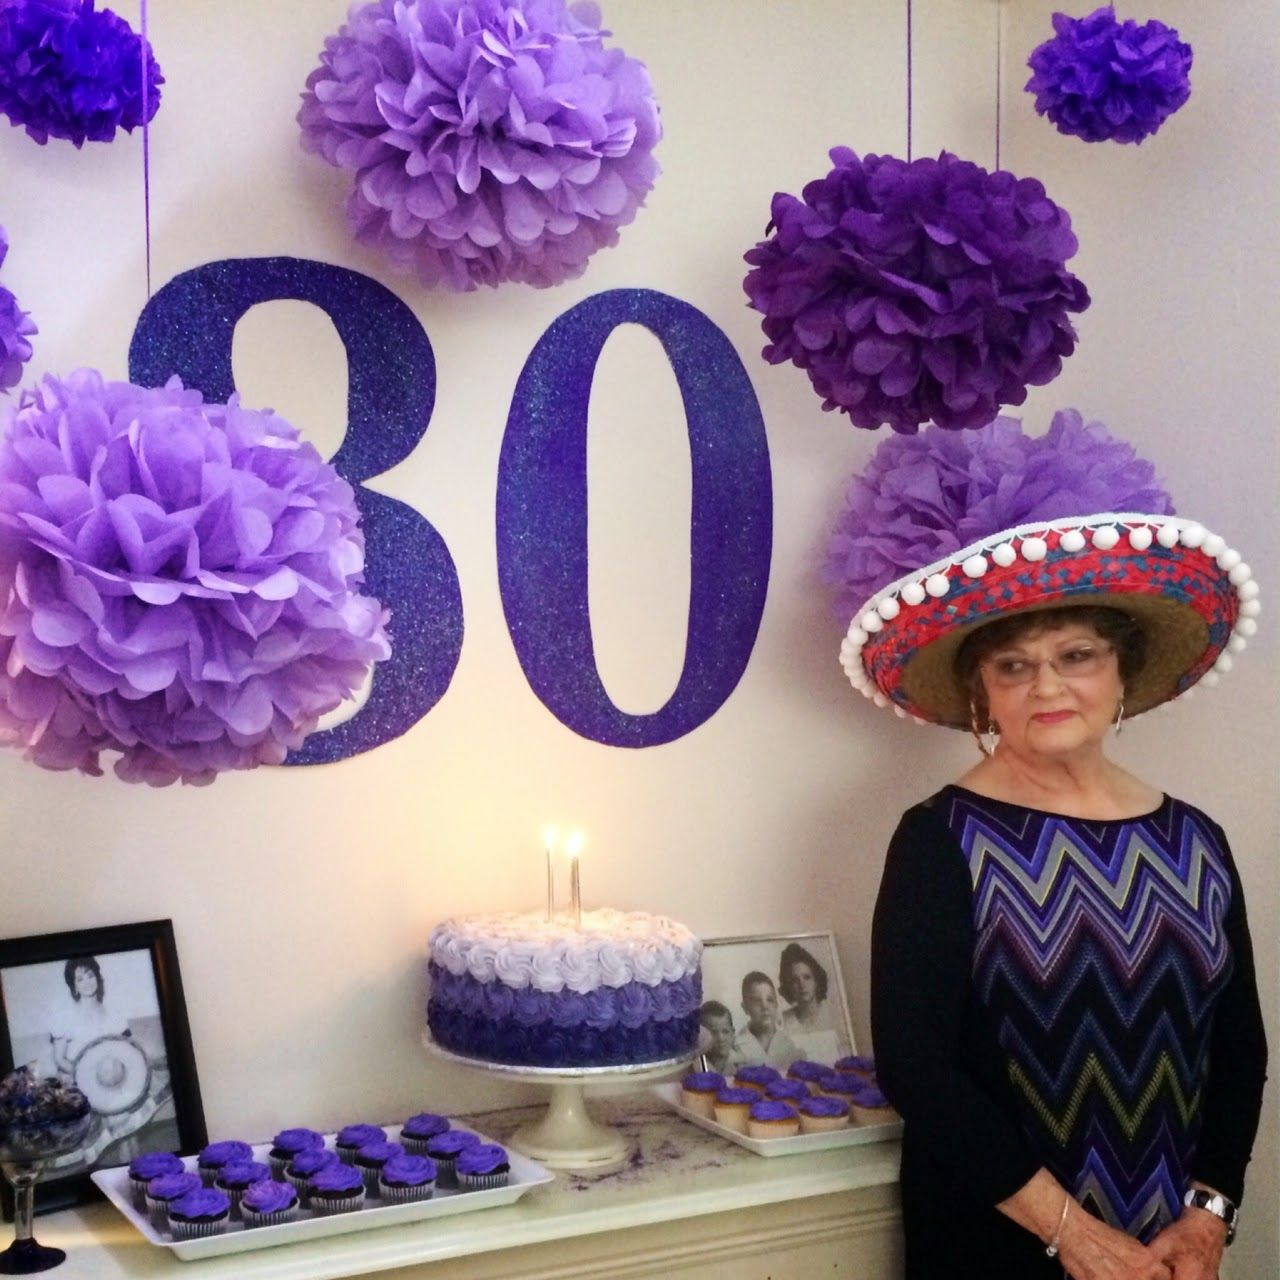 80th Birthday Party Party Decorations Purple Birthday Purple Decorations Purple Pom Pom